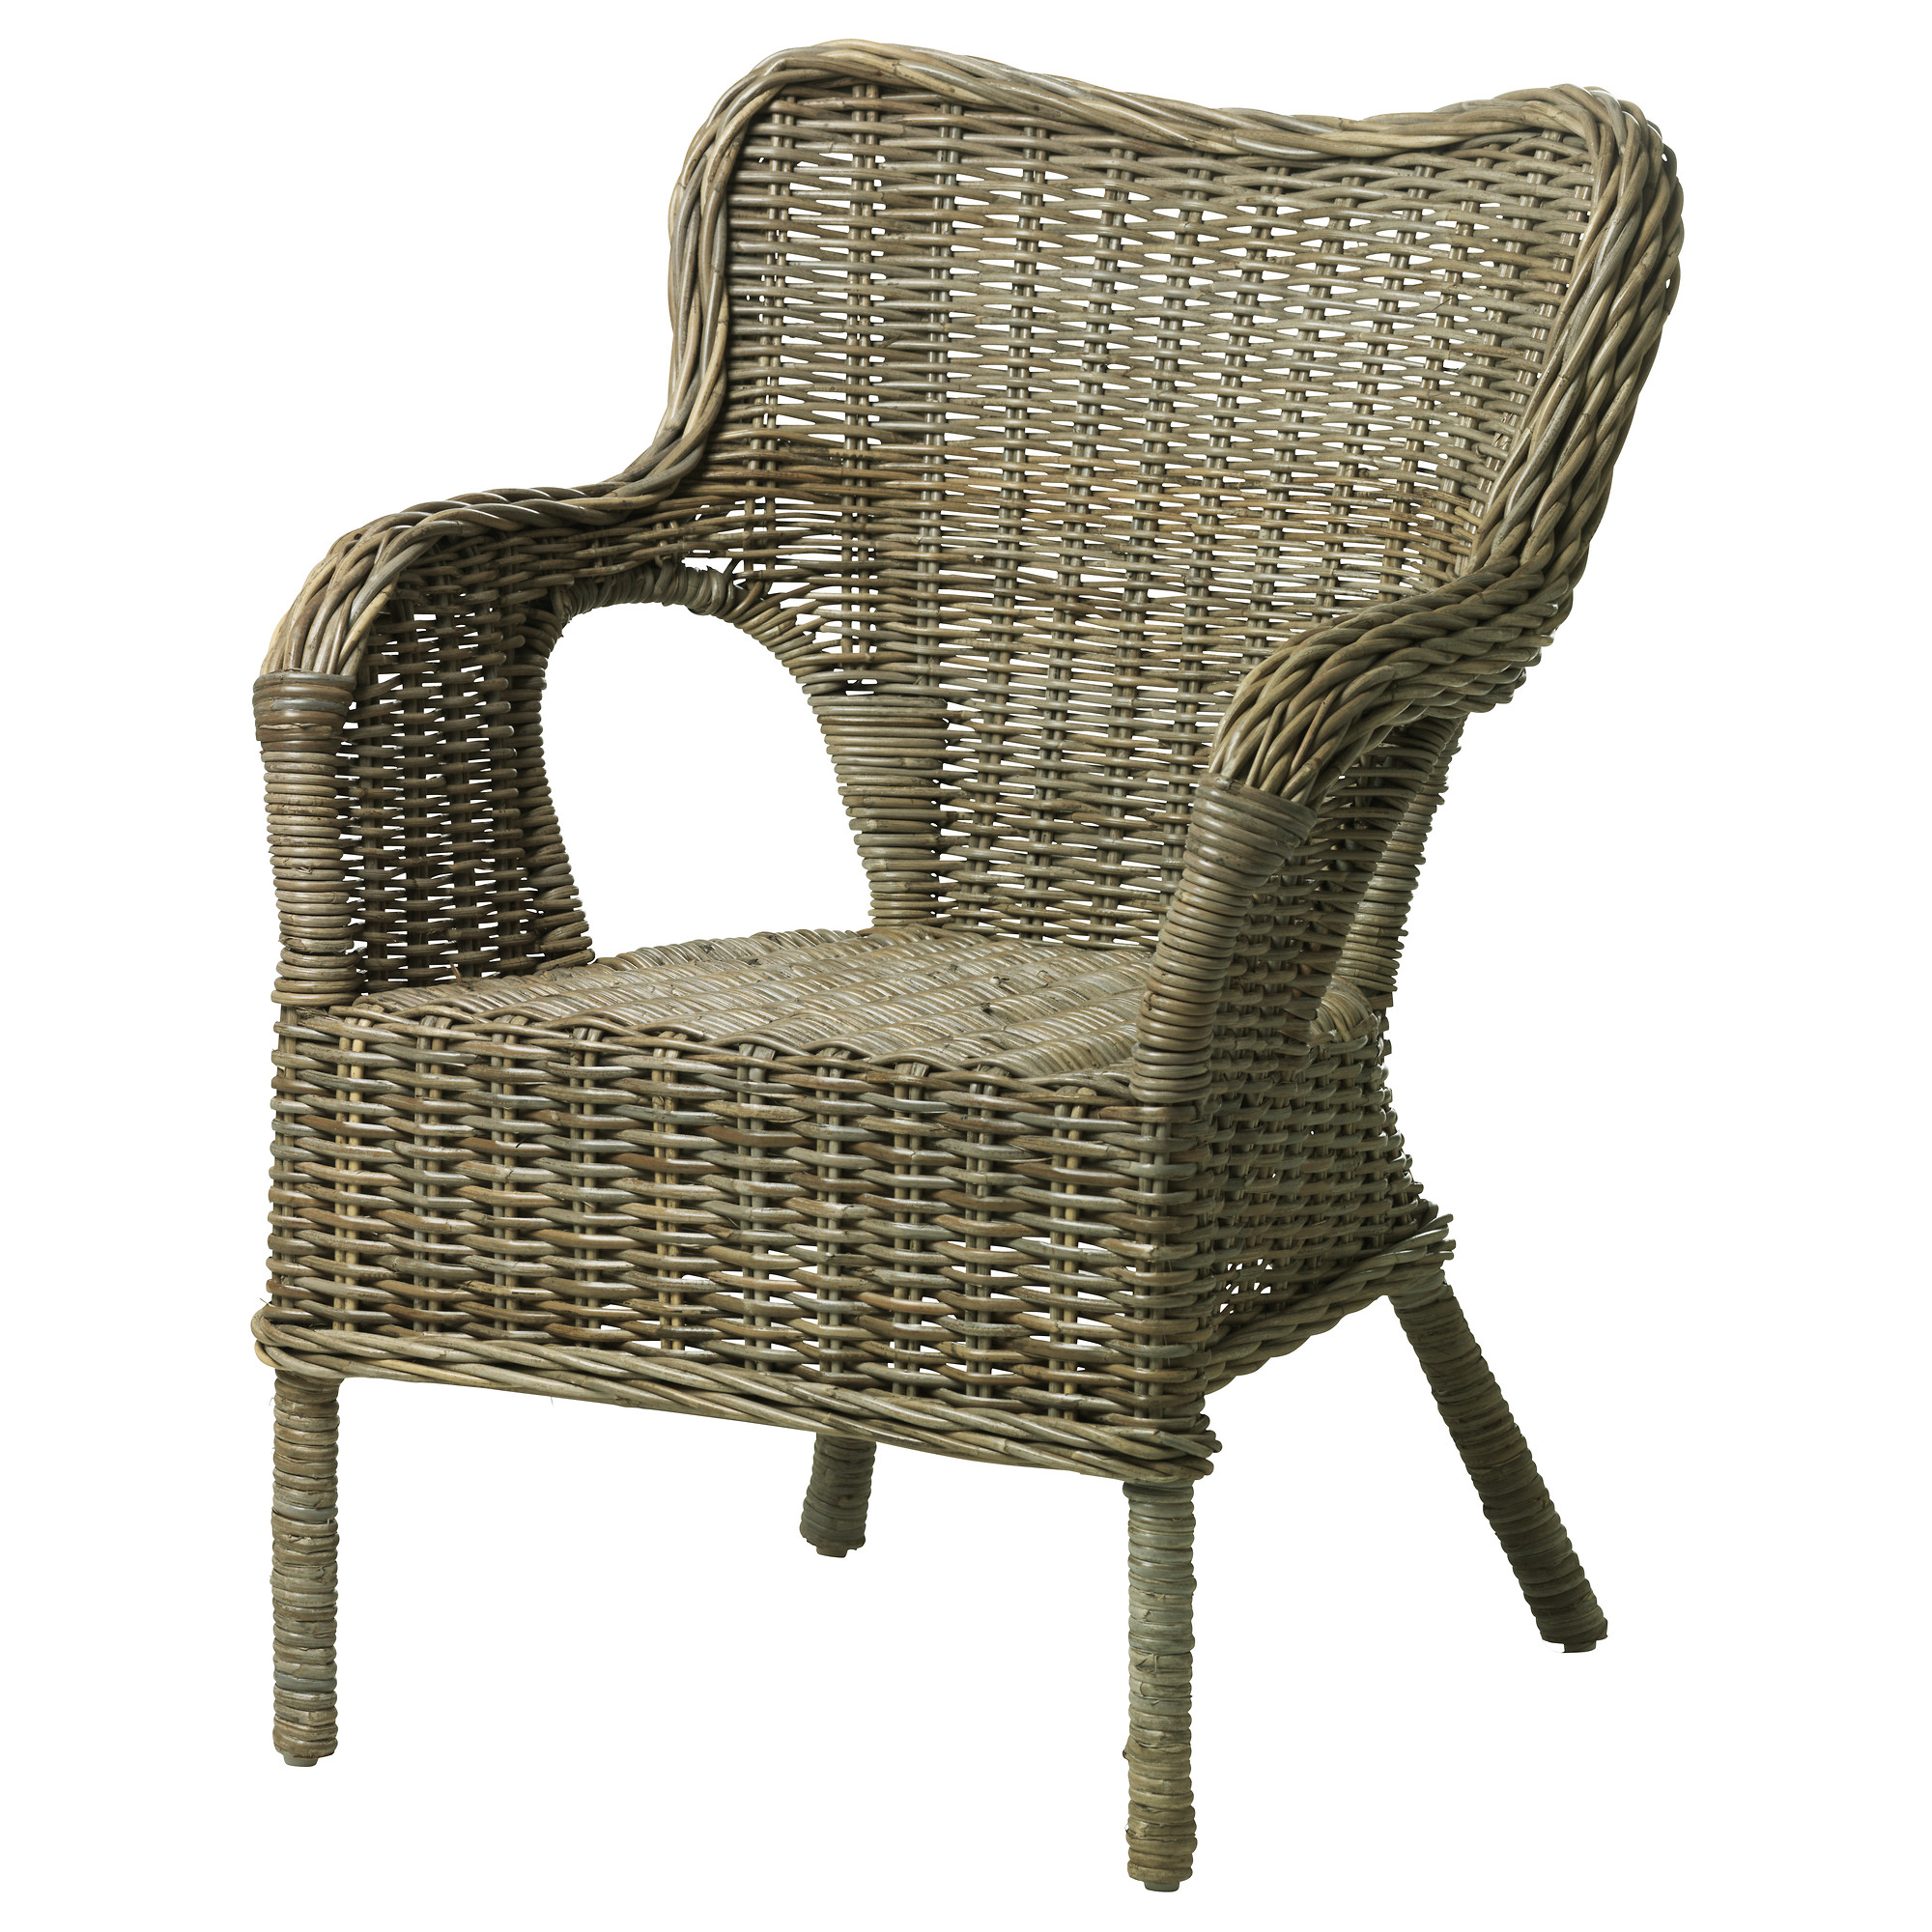 wicker chairs byholma chair - ikea AGRQCBZ